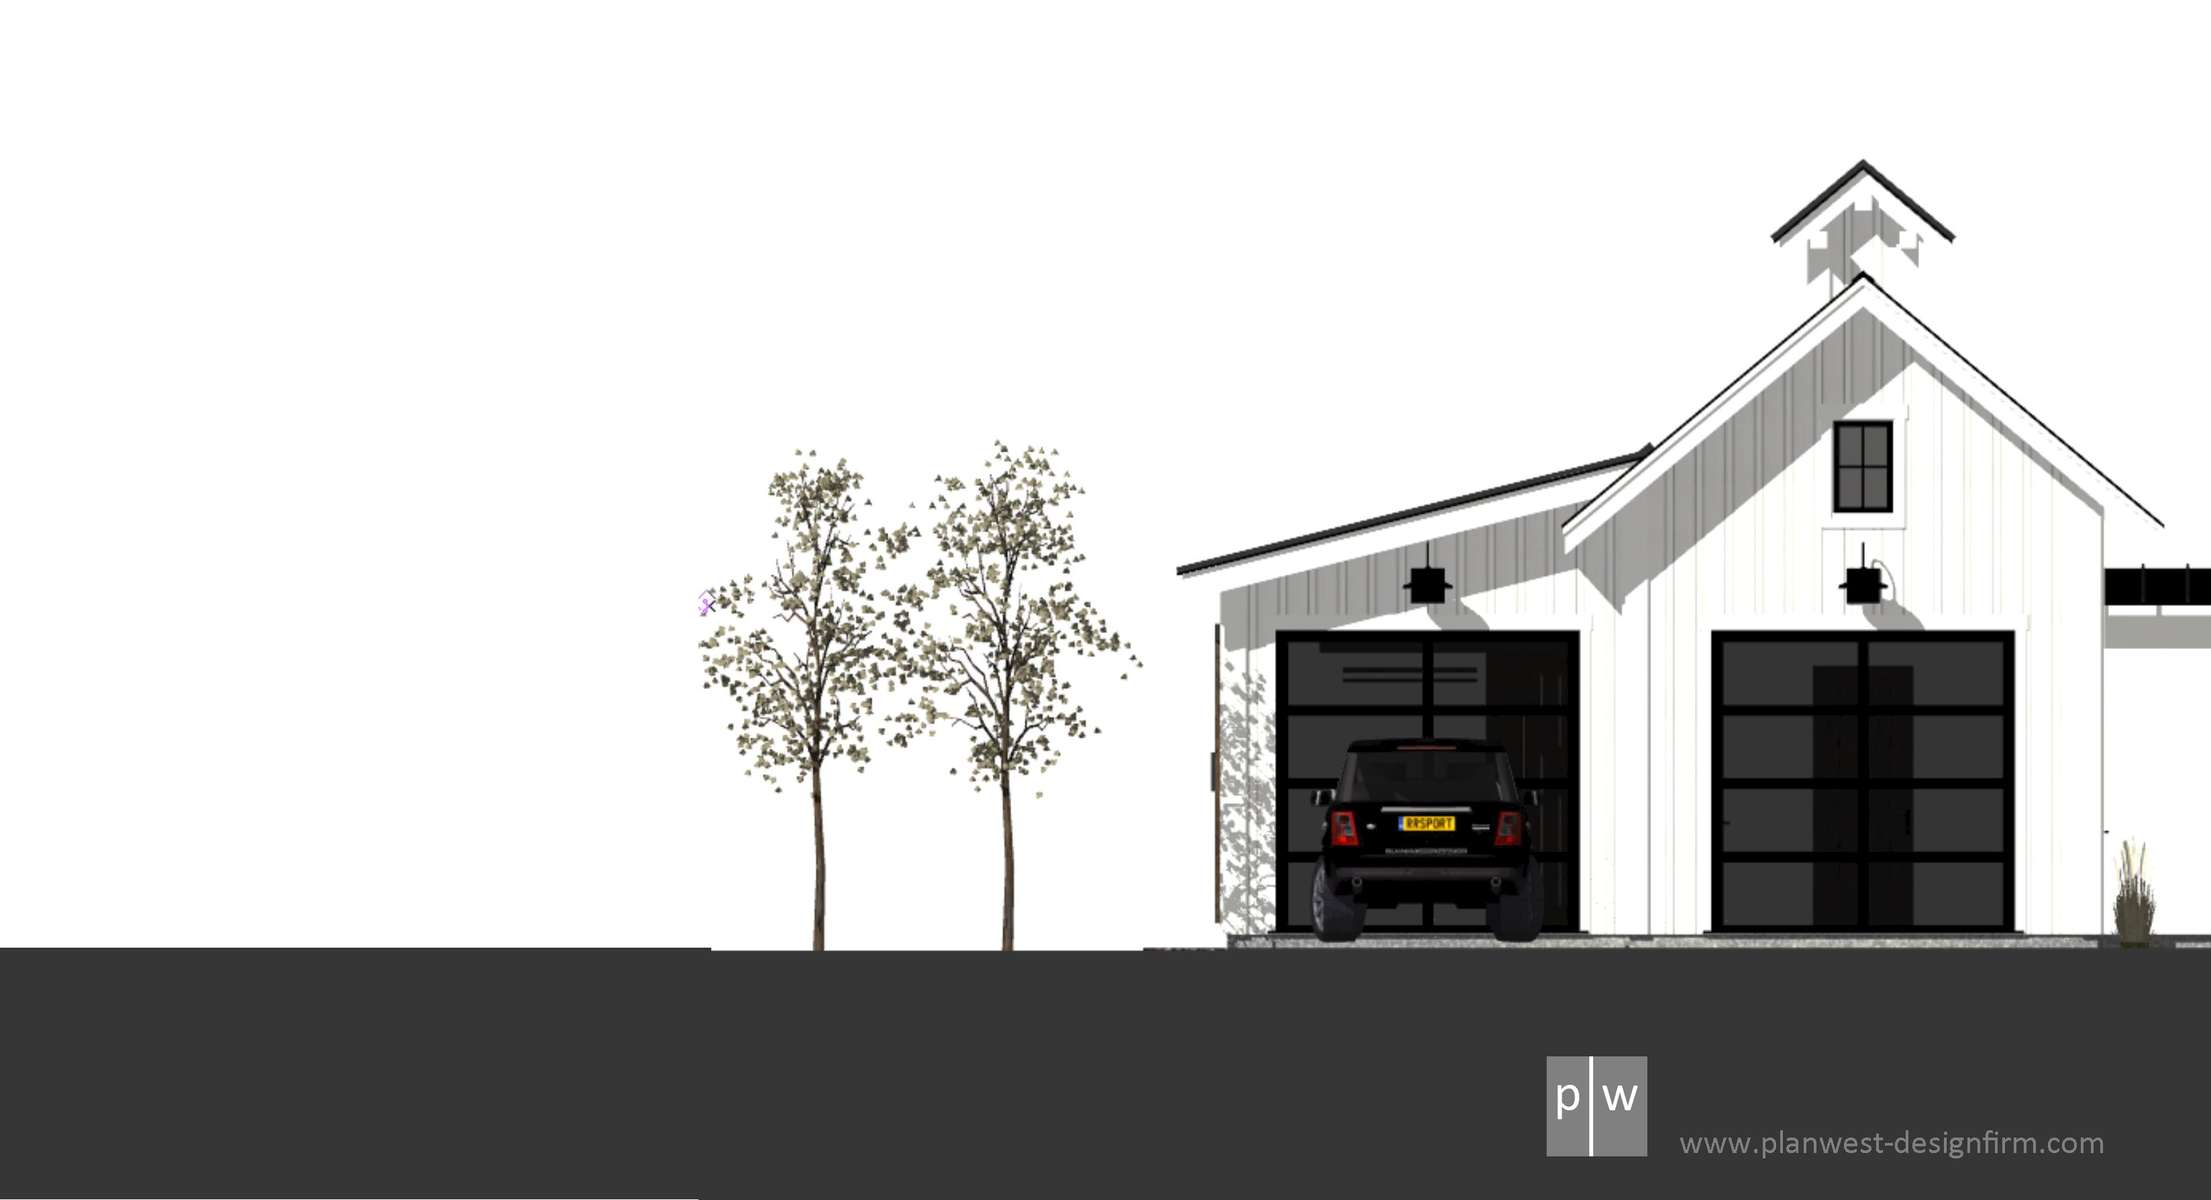 plan-west-design-firm-_projects-in-process-526